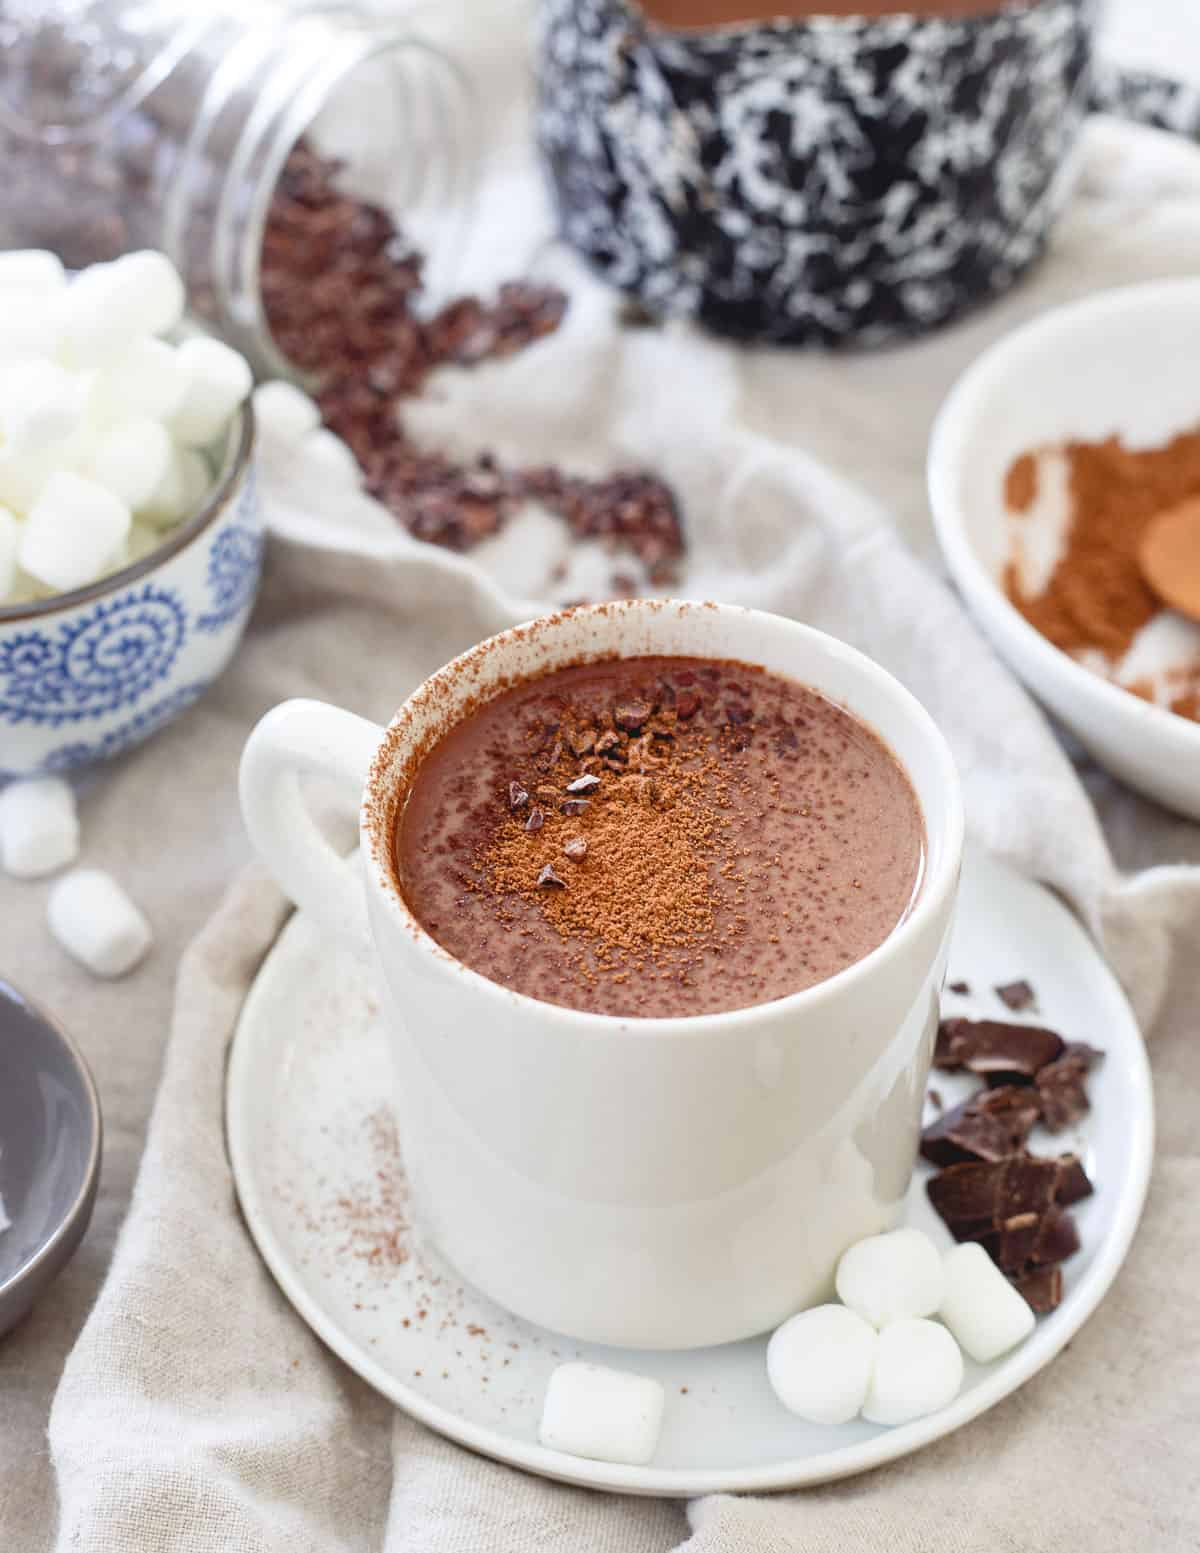 Reap the rewards of the powerful tart cherry with a warm mug of this tart cherry hot chocolate!